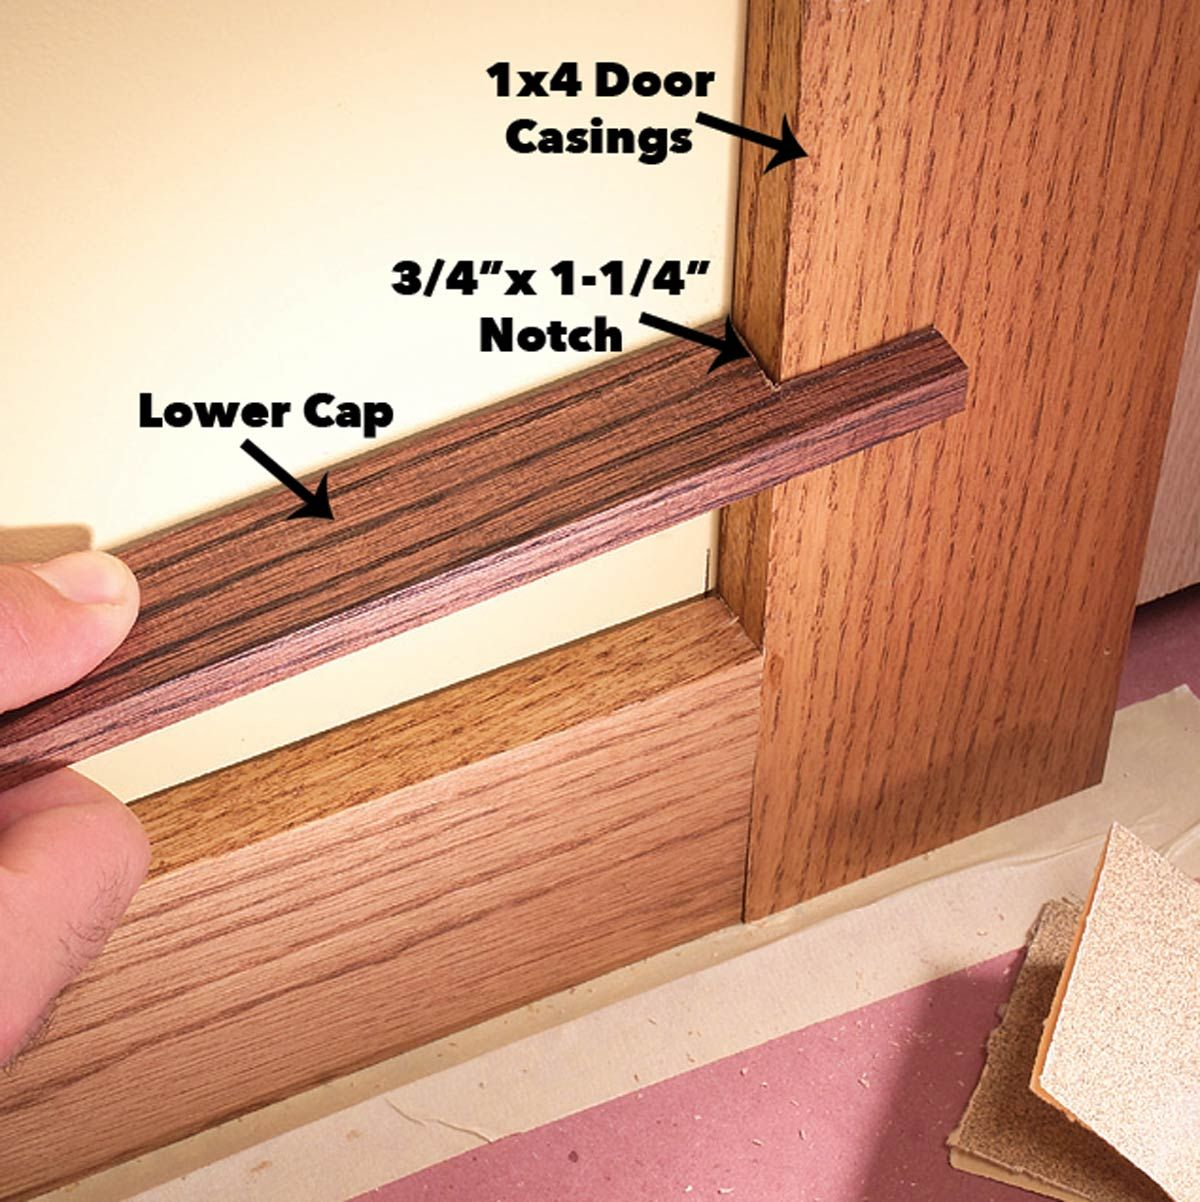 How To Install Craftsman Window Trim And Craftsman Door Casing Craftsman Window Trim Craftsman Windows Craftsman Door